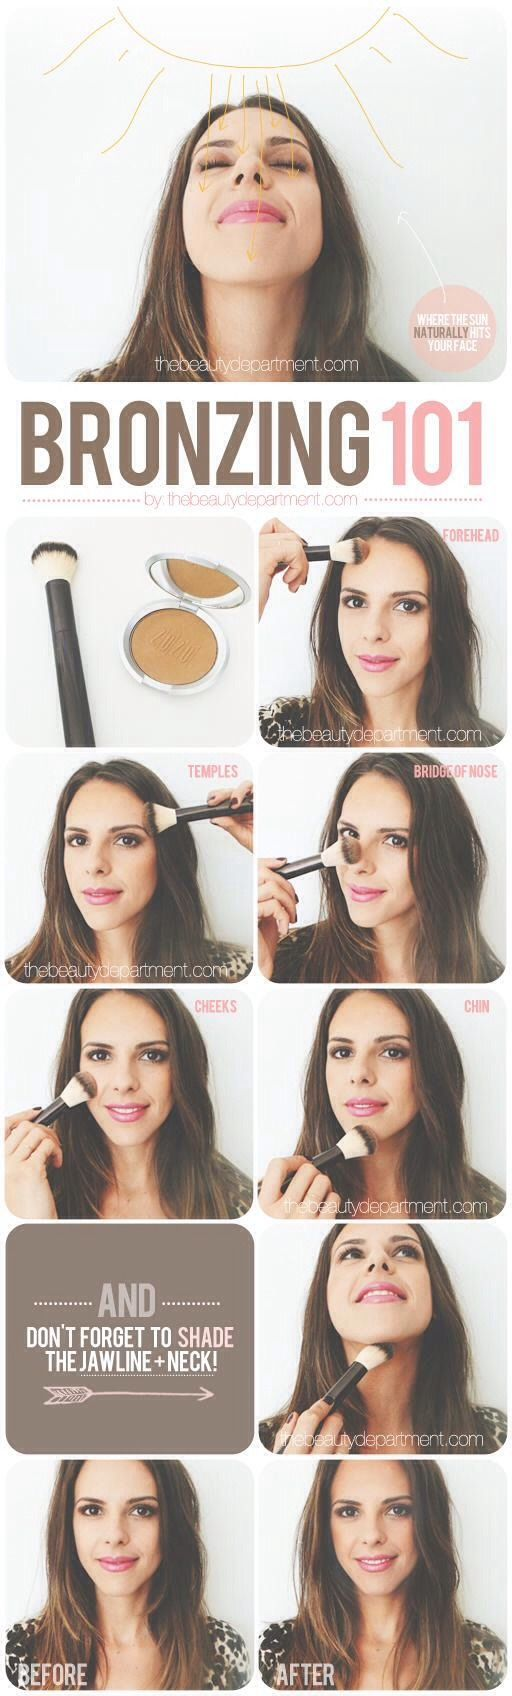 25 beautiful applying bronzer ideas on pinterest make up 25 beautiful applying bronzer ideas on pinterest make up tutorial blush tutorial and make up ideas step by step ccuart Gallery